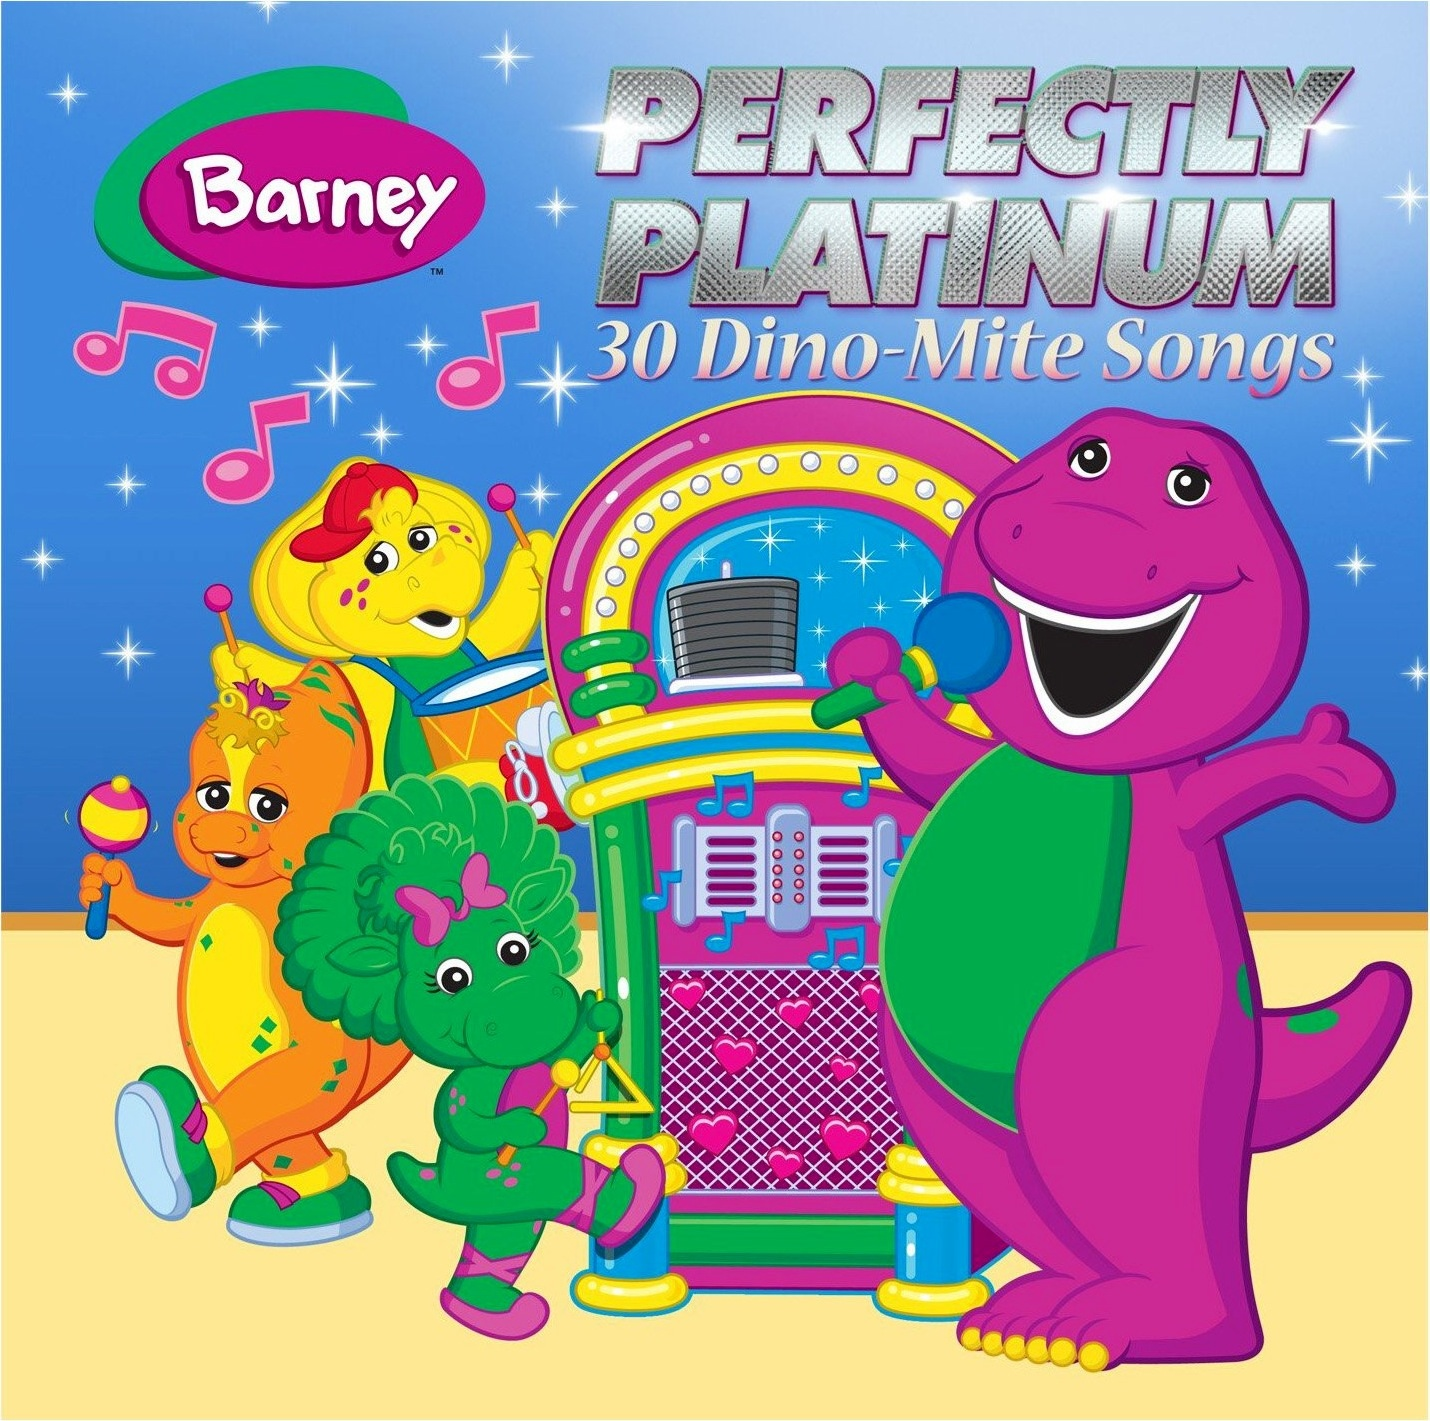 perfectly platinum 30 dino mite songs barney wiki fandom